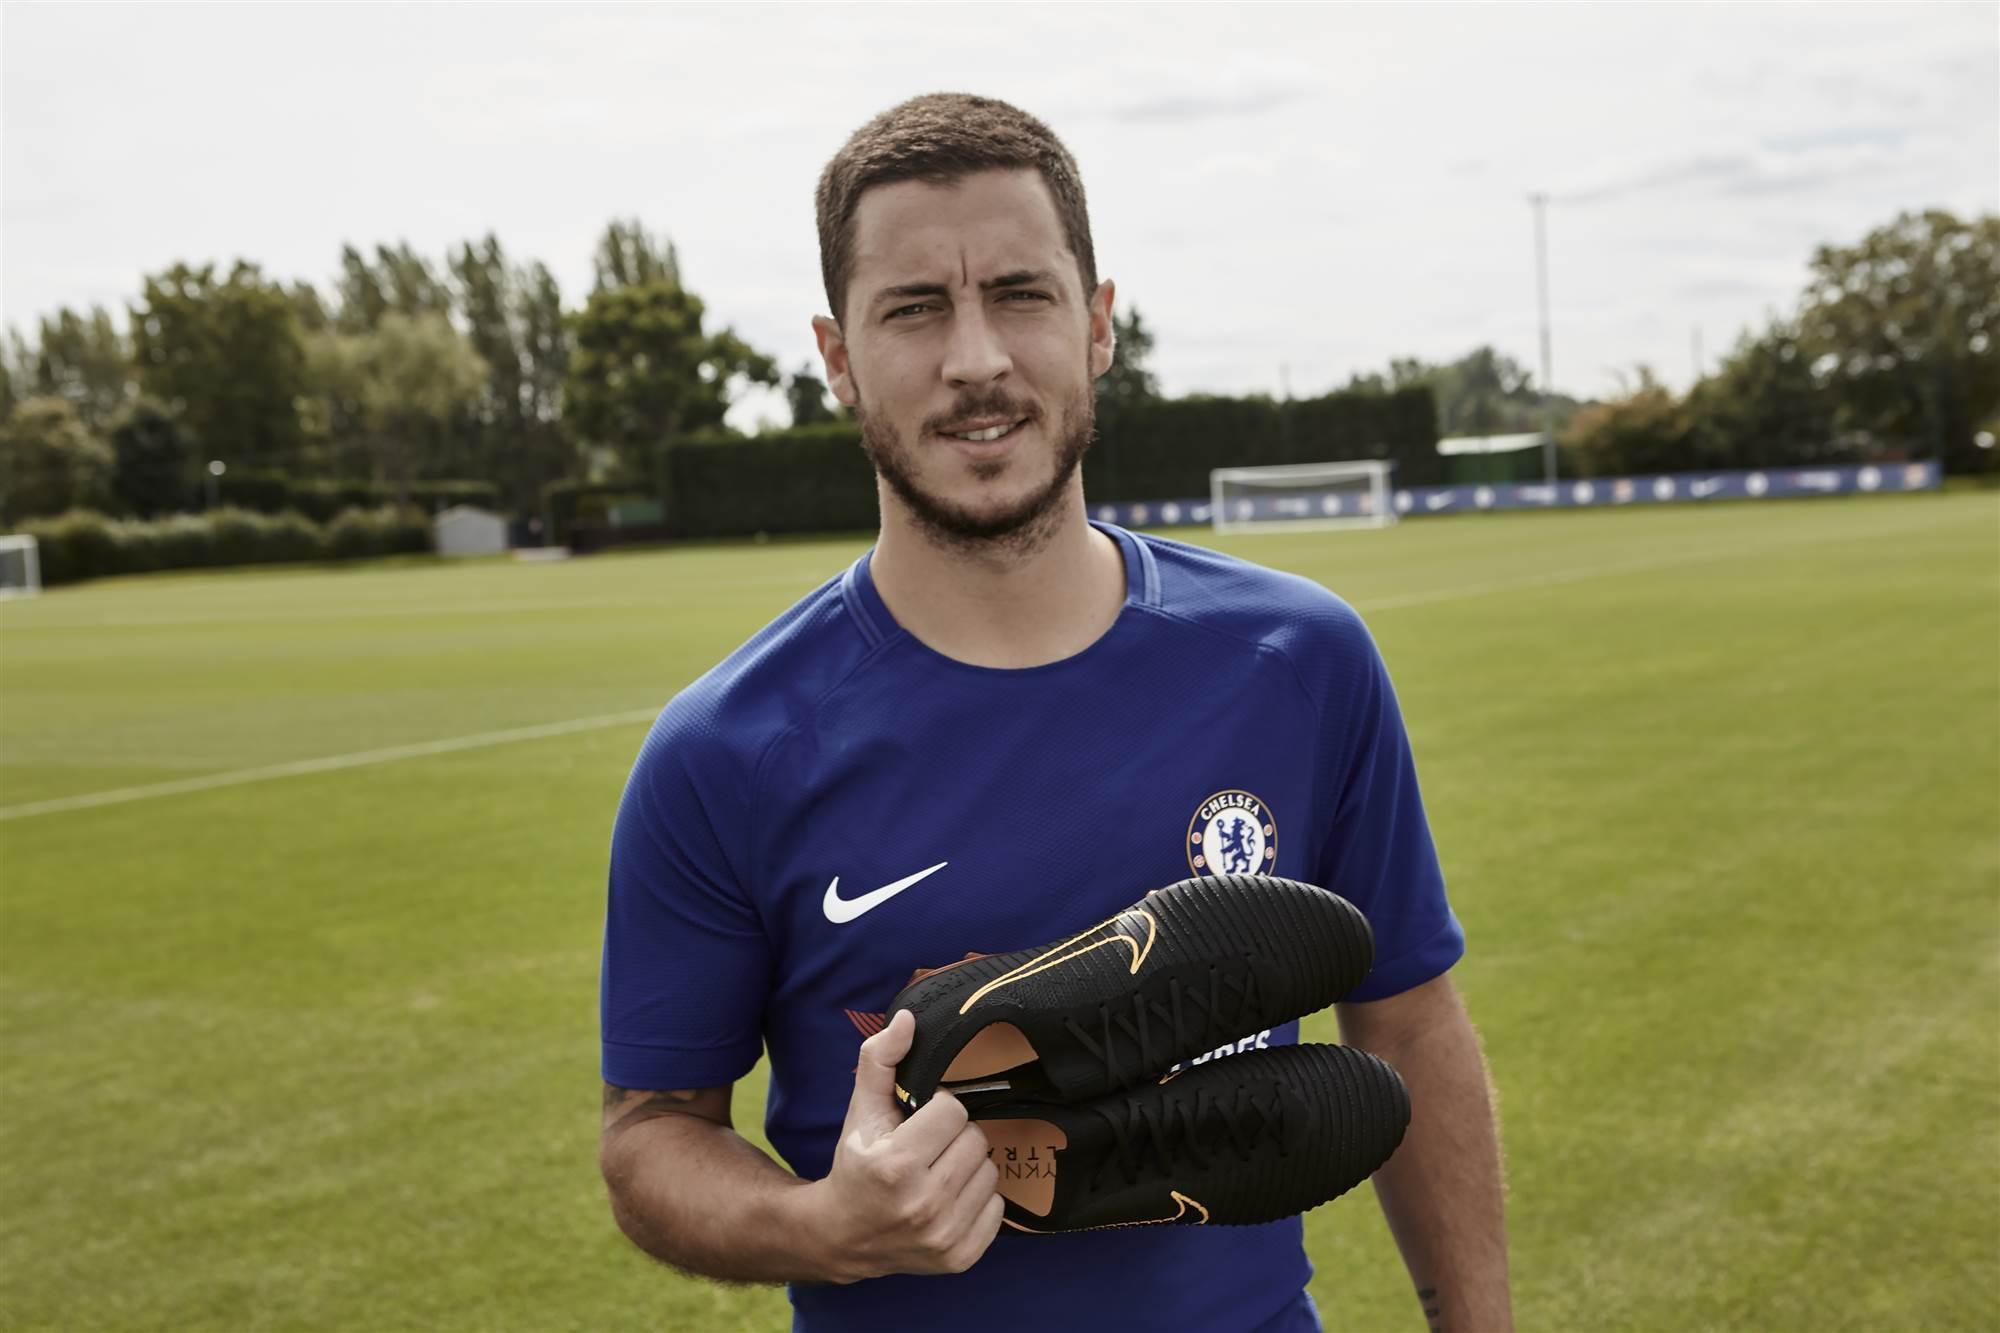 big sale 843d8 d293b Gallery: Nike & Hazard unveil all new Nike boots - Boots ...